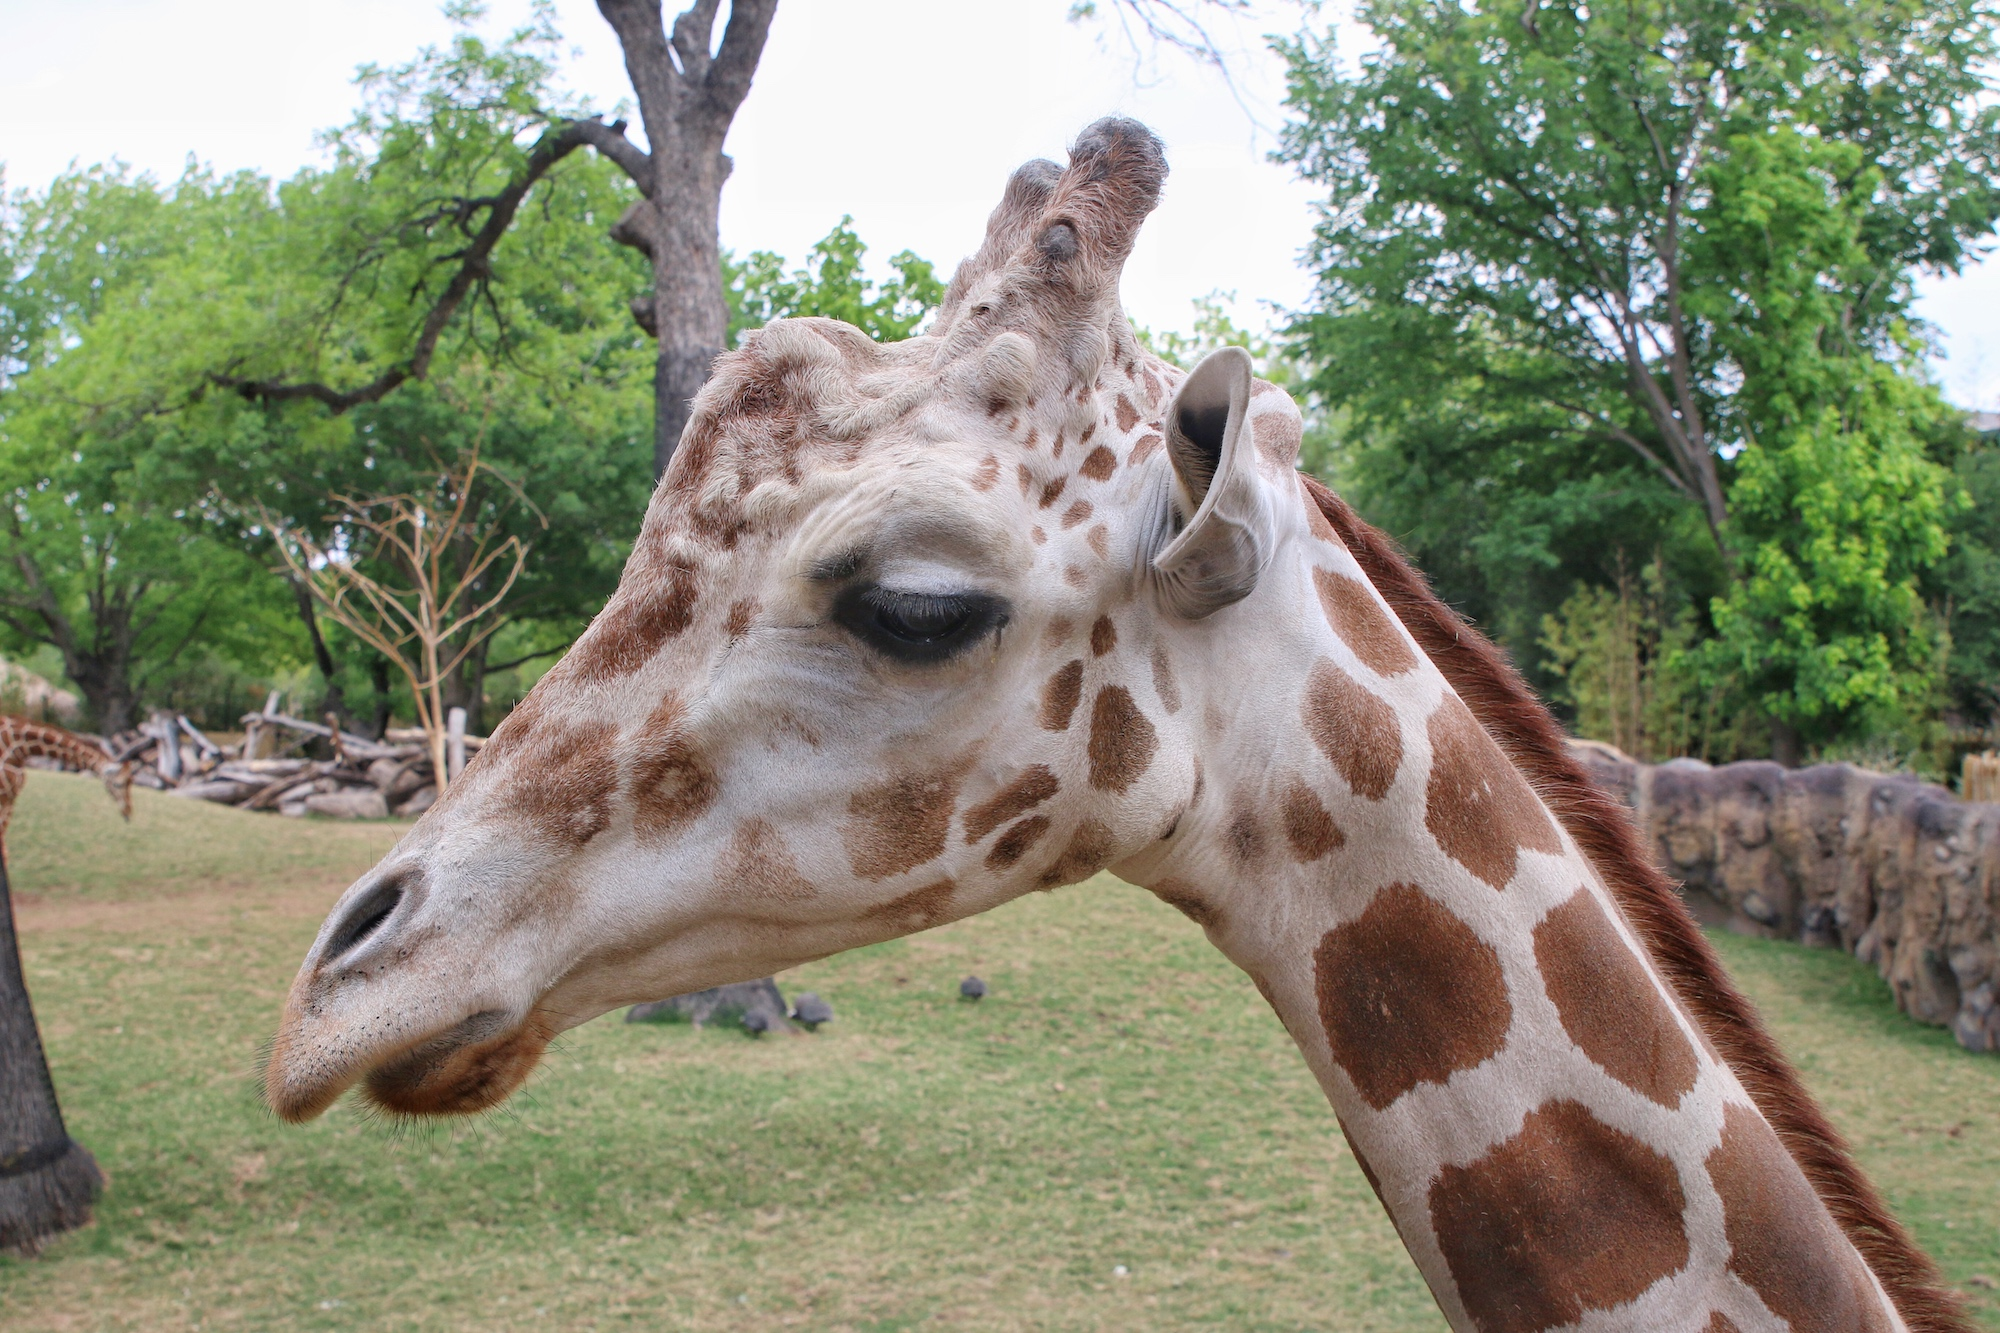 up close photo of giraffe at Fort Worth zoo